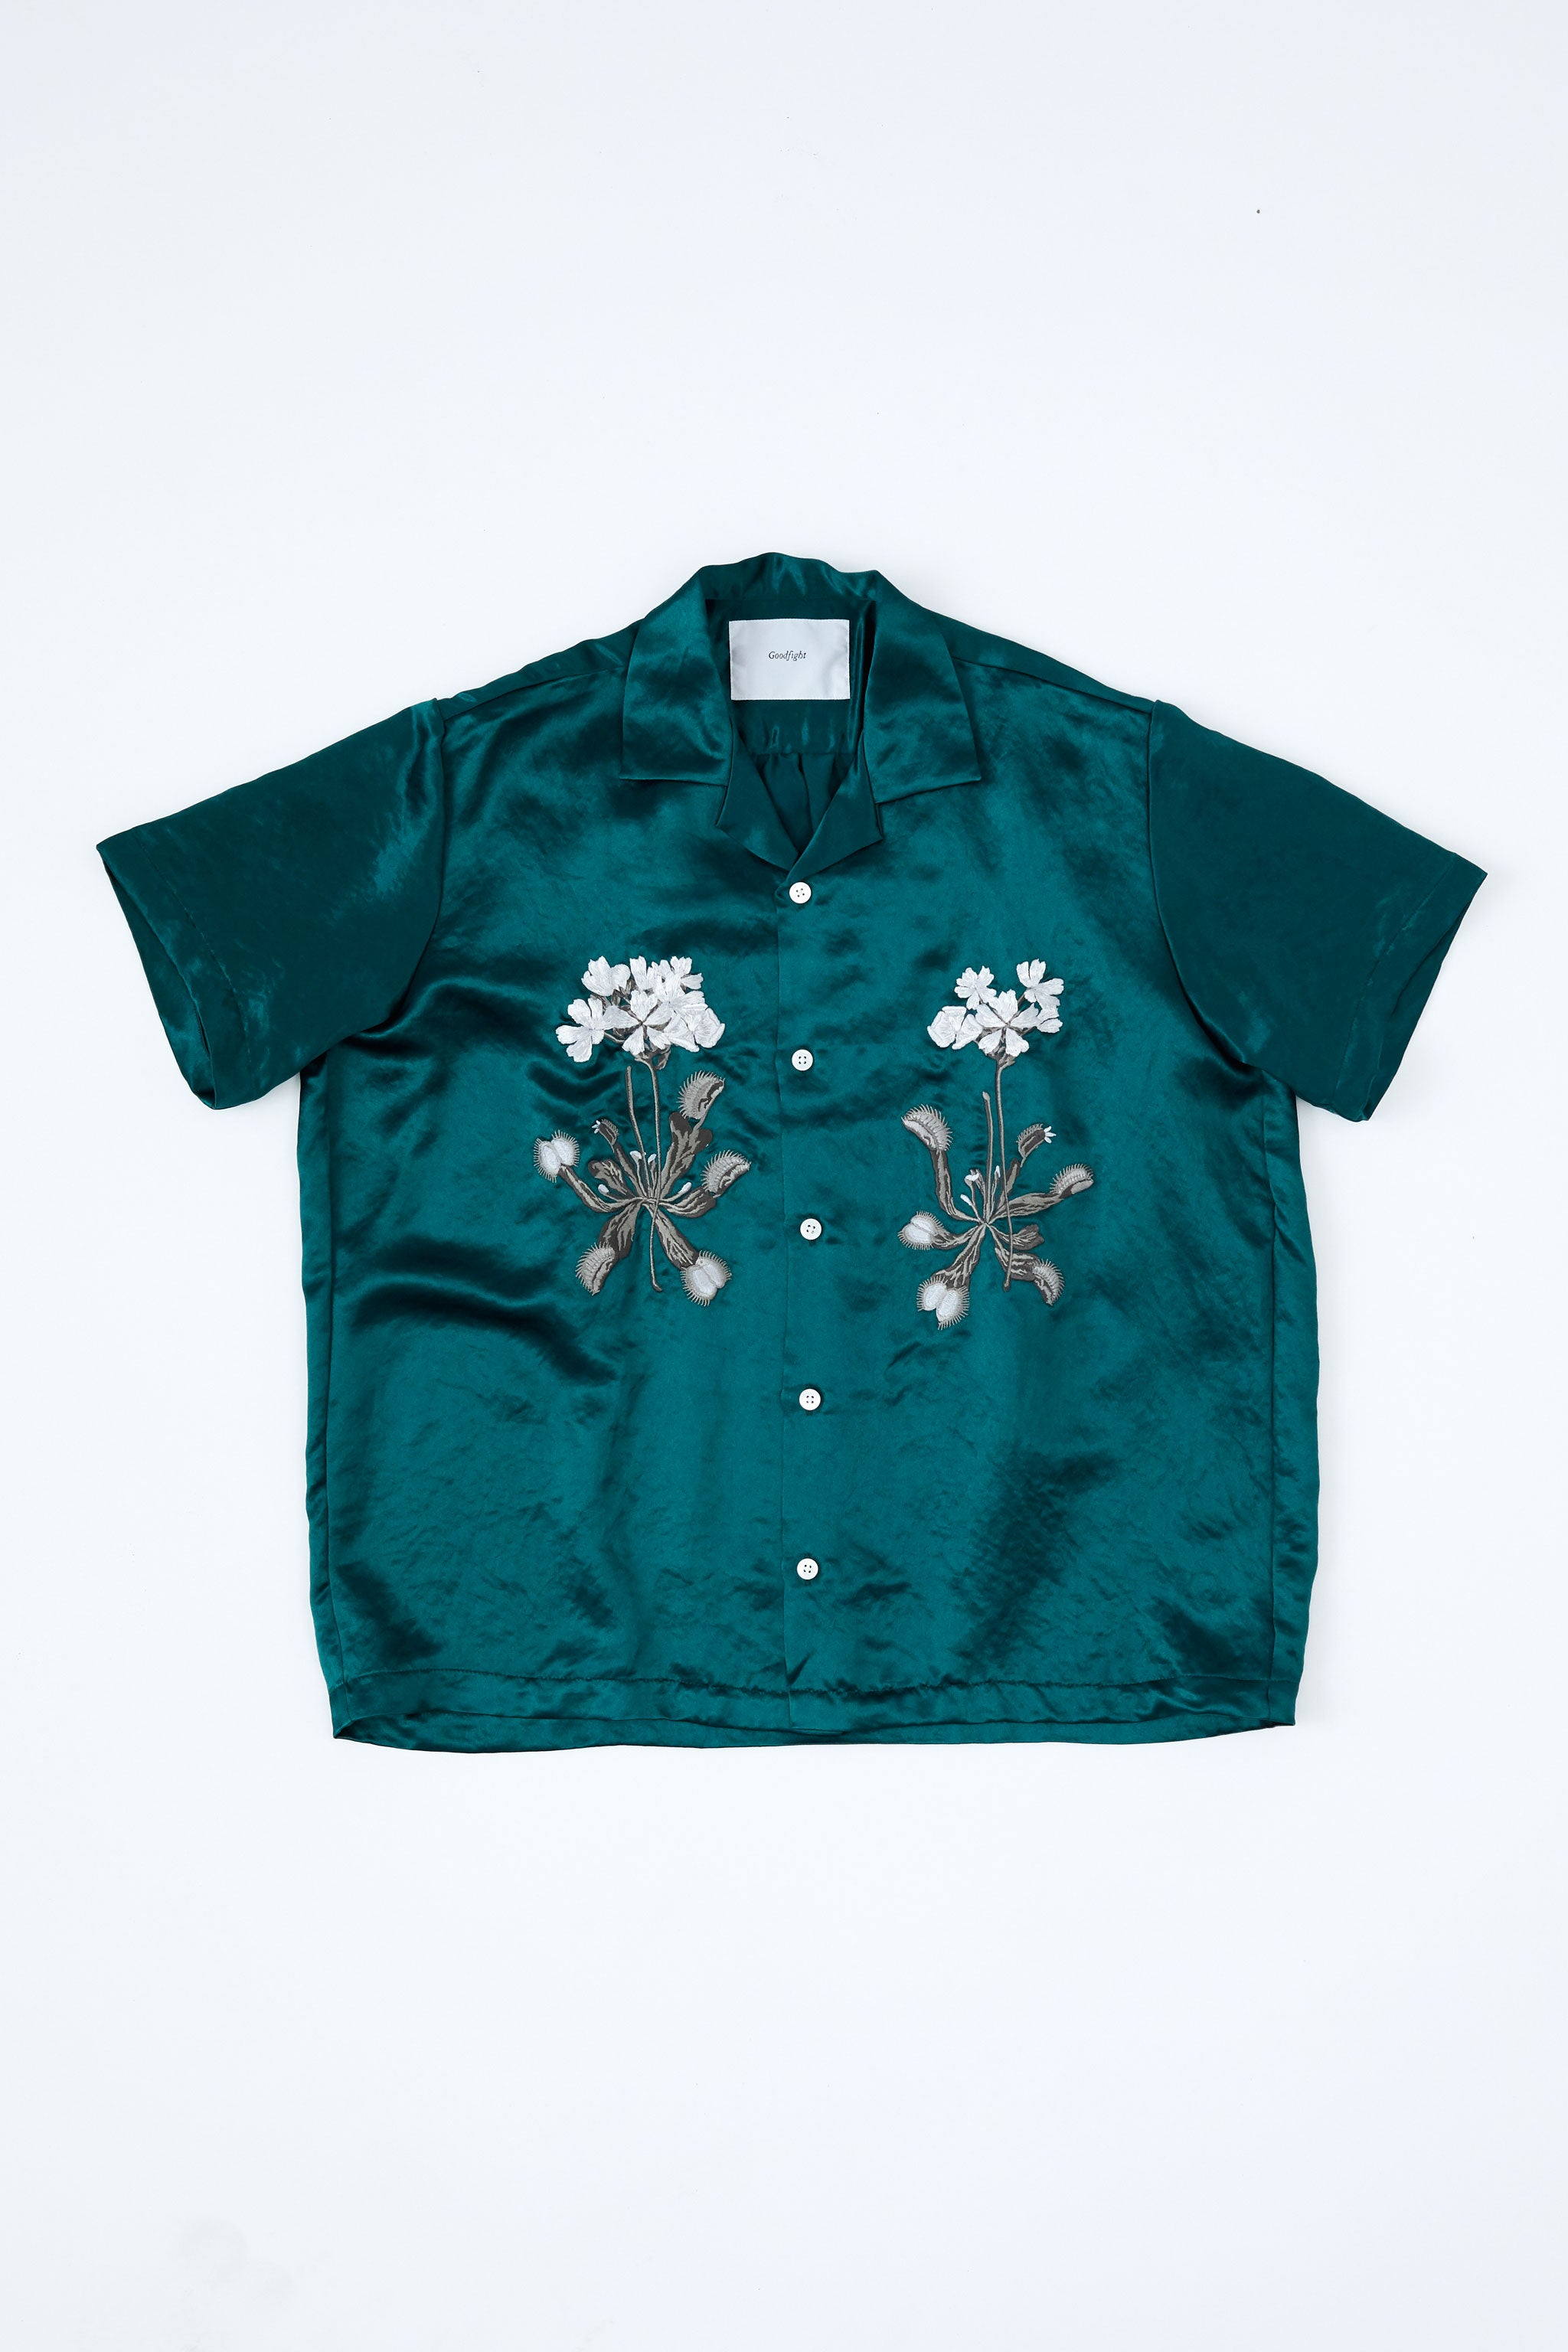 Goodfight Summertone Set Venus Bowler Shirt Green